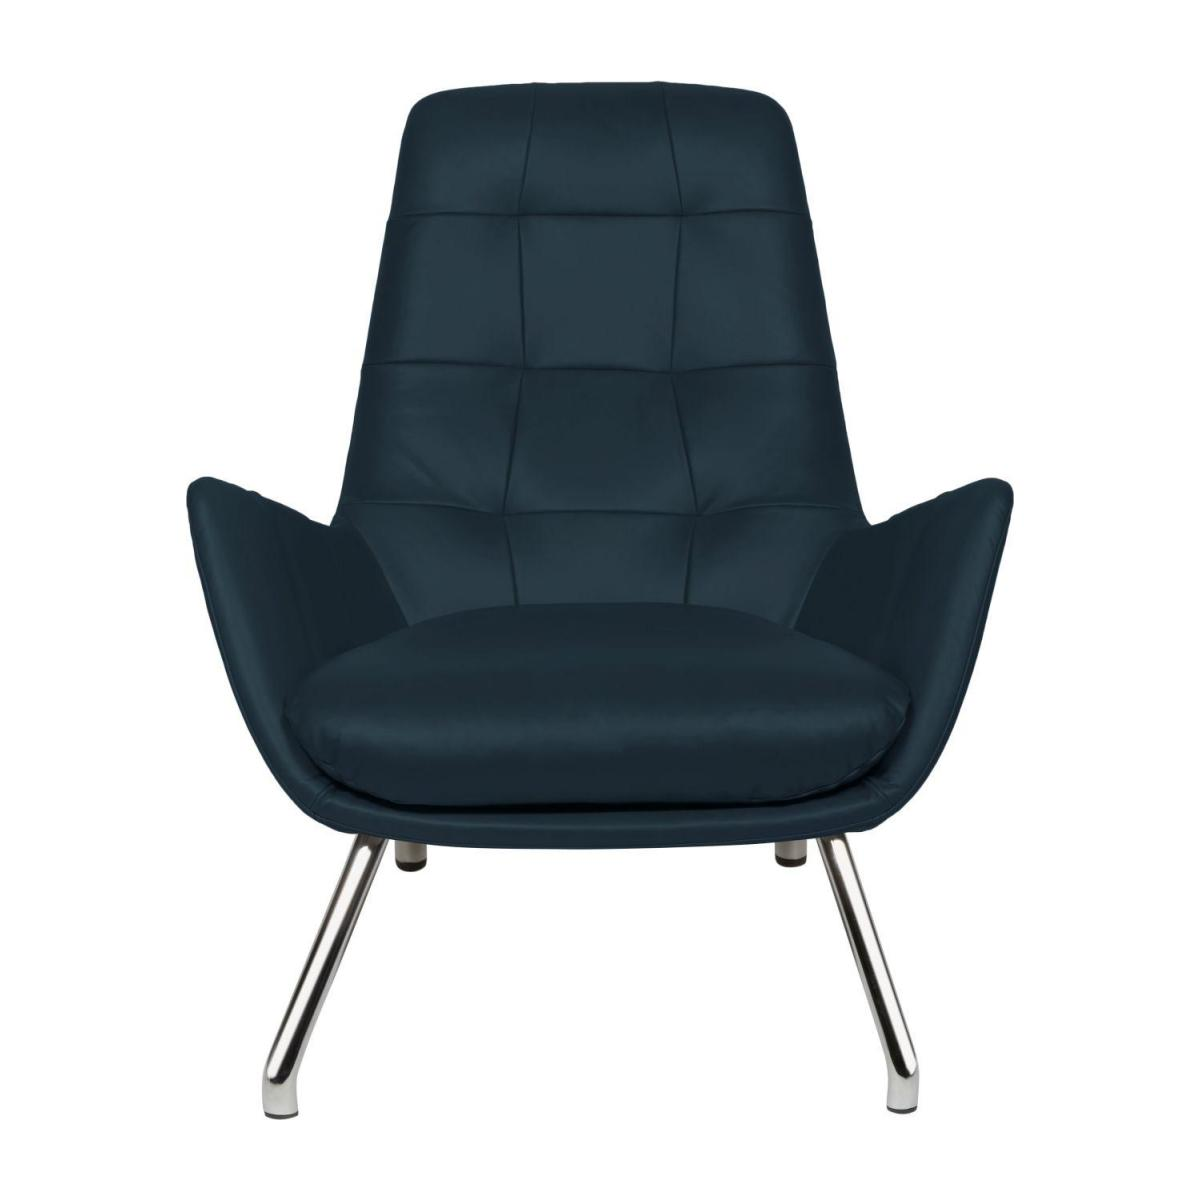 Peachy Armchair In Vintage Aniline Leather Denim Blue With Chromed Metal Legs Unemploymentrelief Wooden Chair Designs For Living Room Unemploymentrelieforg